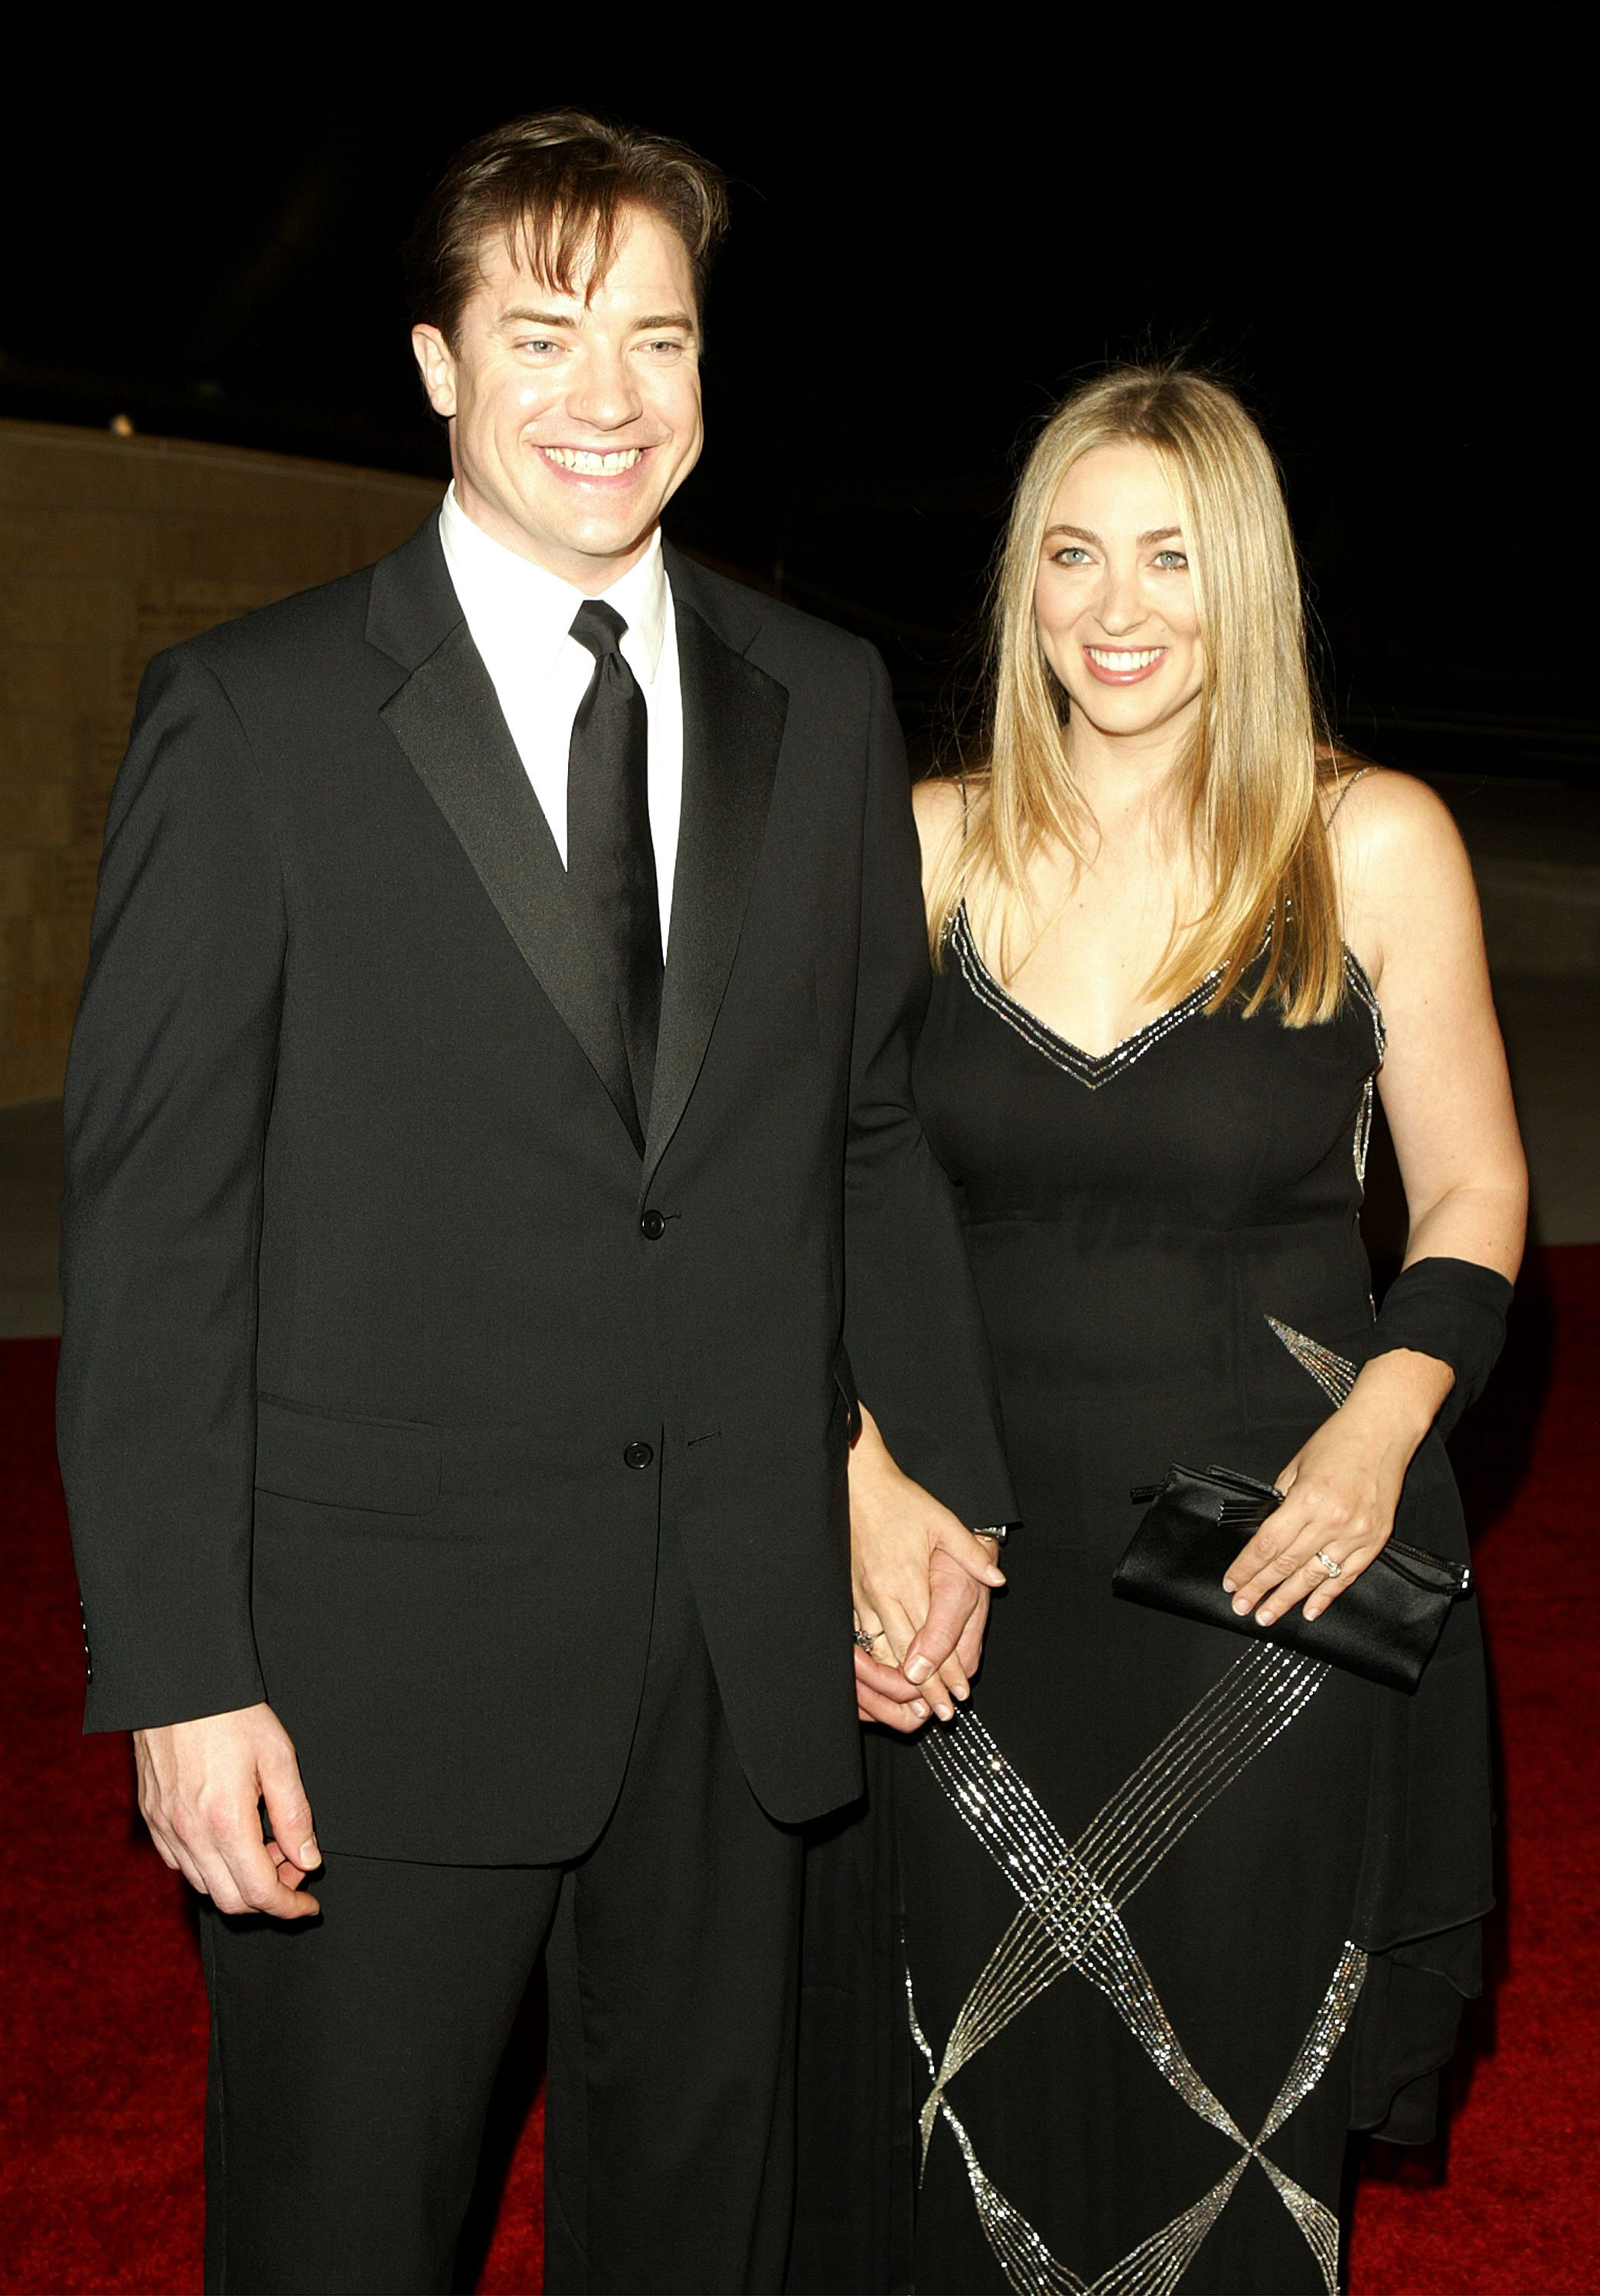 Brendan Fraser and Afton Smith on October 23, 2003 in Los Angeles, California | Source: Getty Images